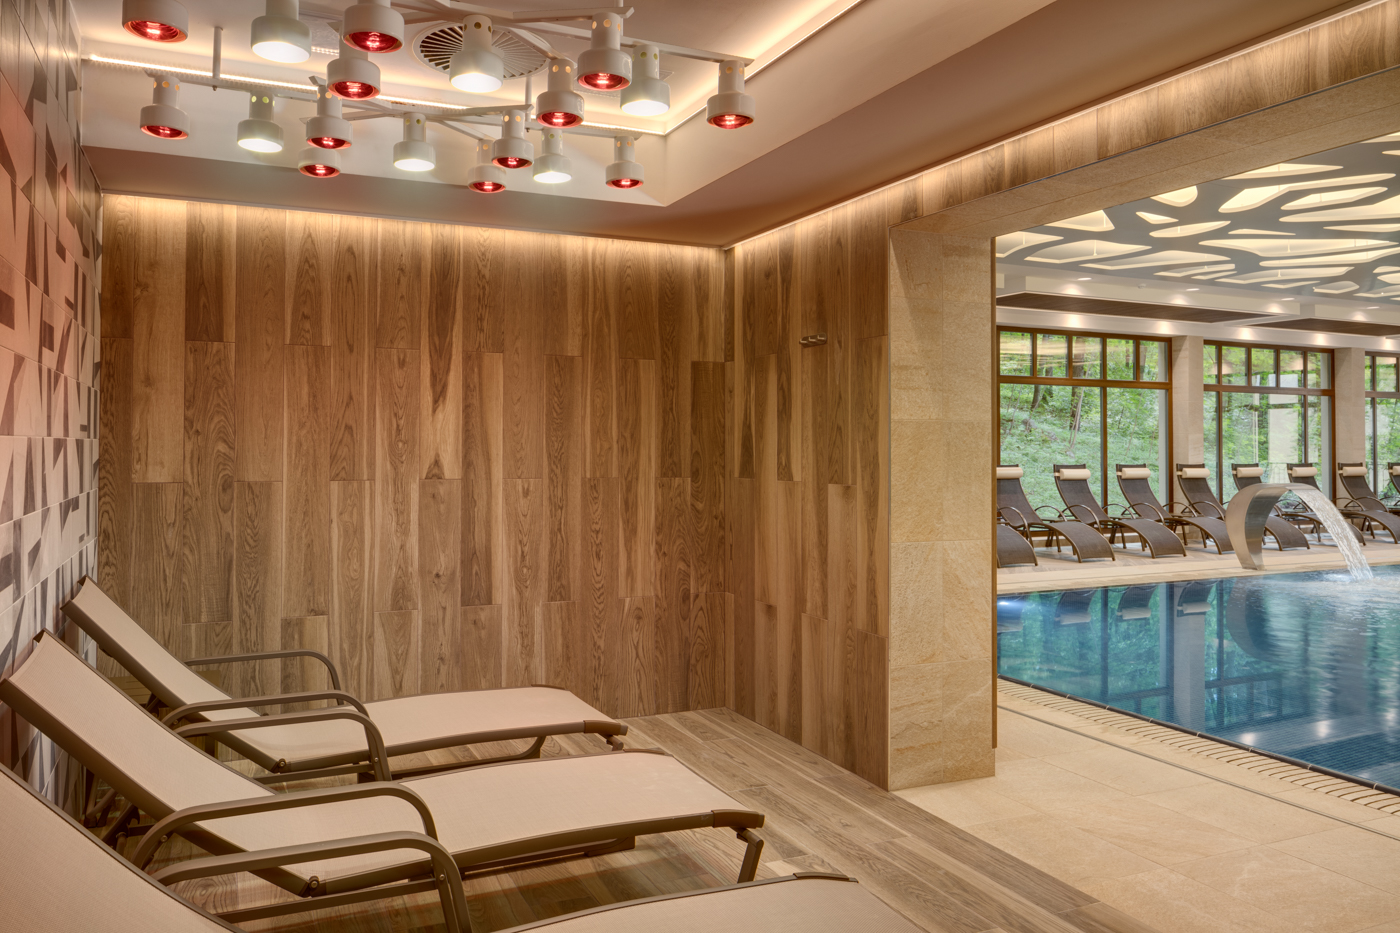 A indoor swimming pool at Ensana Health Spa Resort in Marianske Lazne